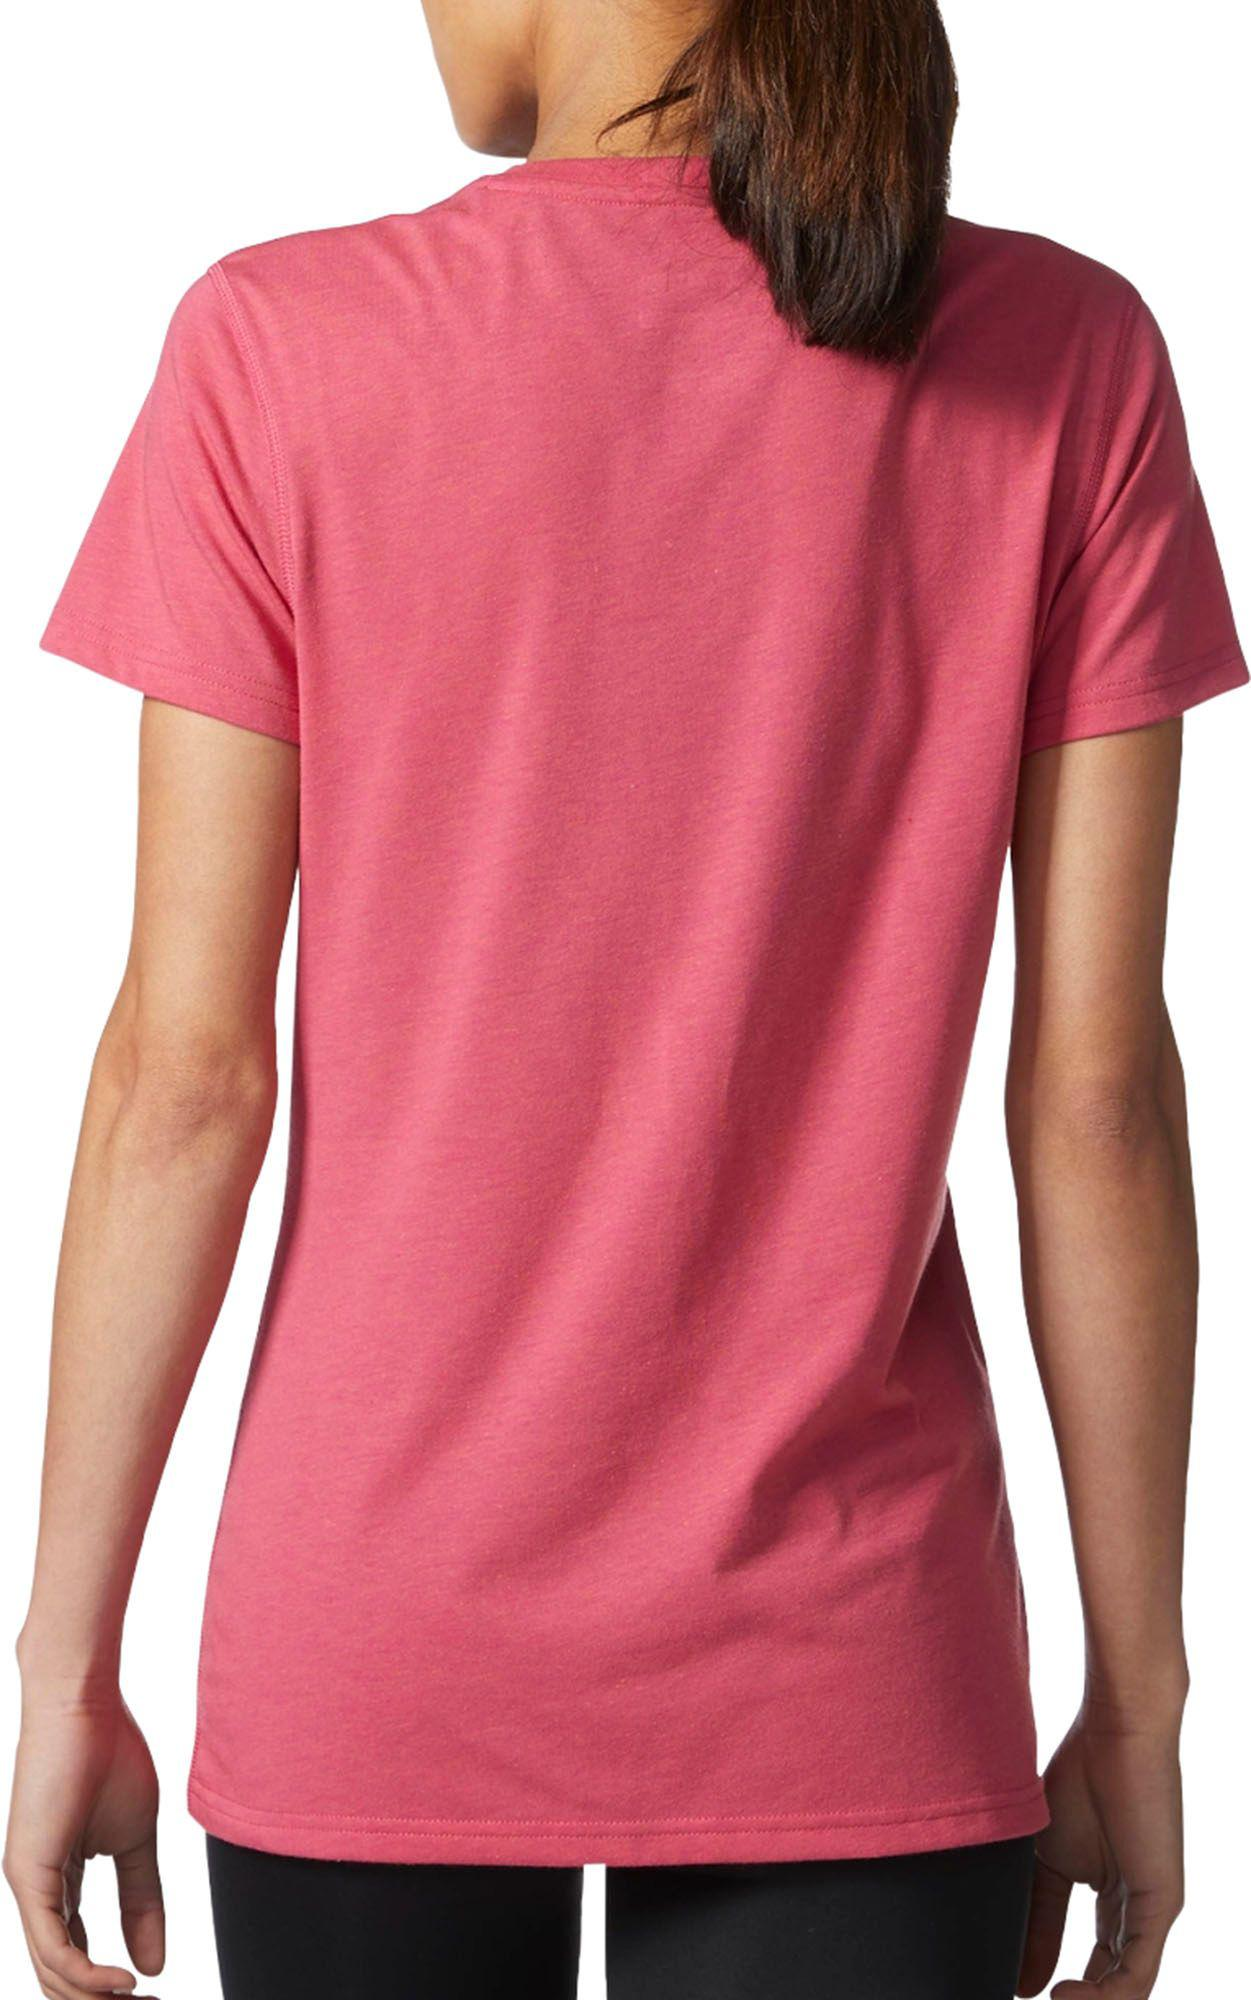 Lyst Ultimate Double T Adidas 2 Roze In Dye shirt hals V 0 wPlOTkiXZu